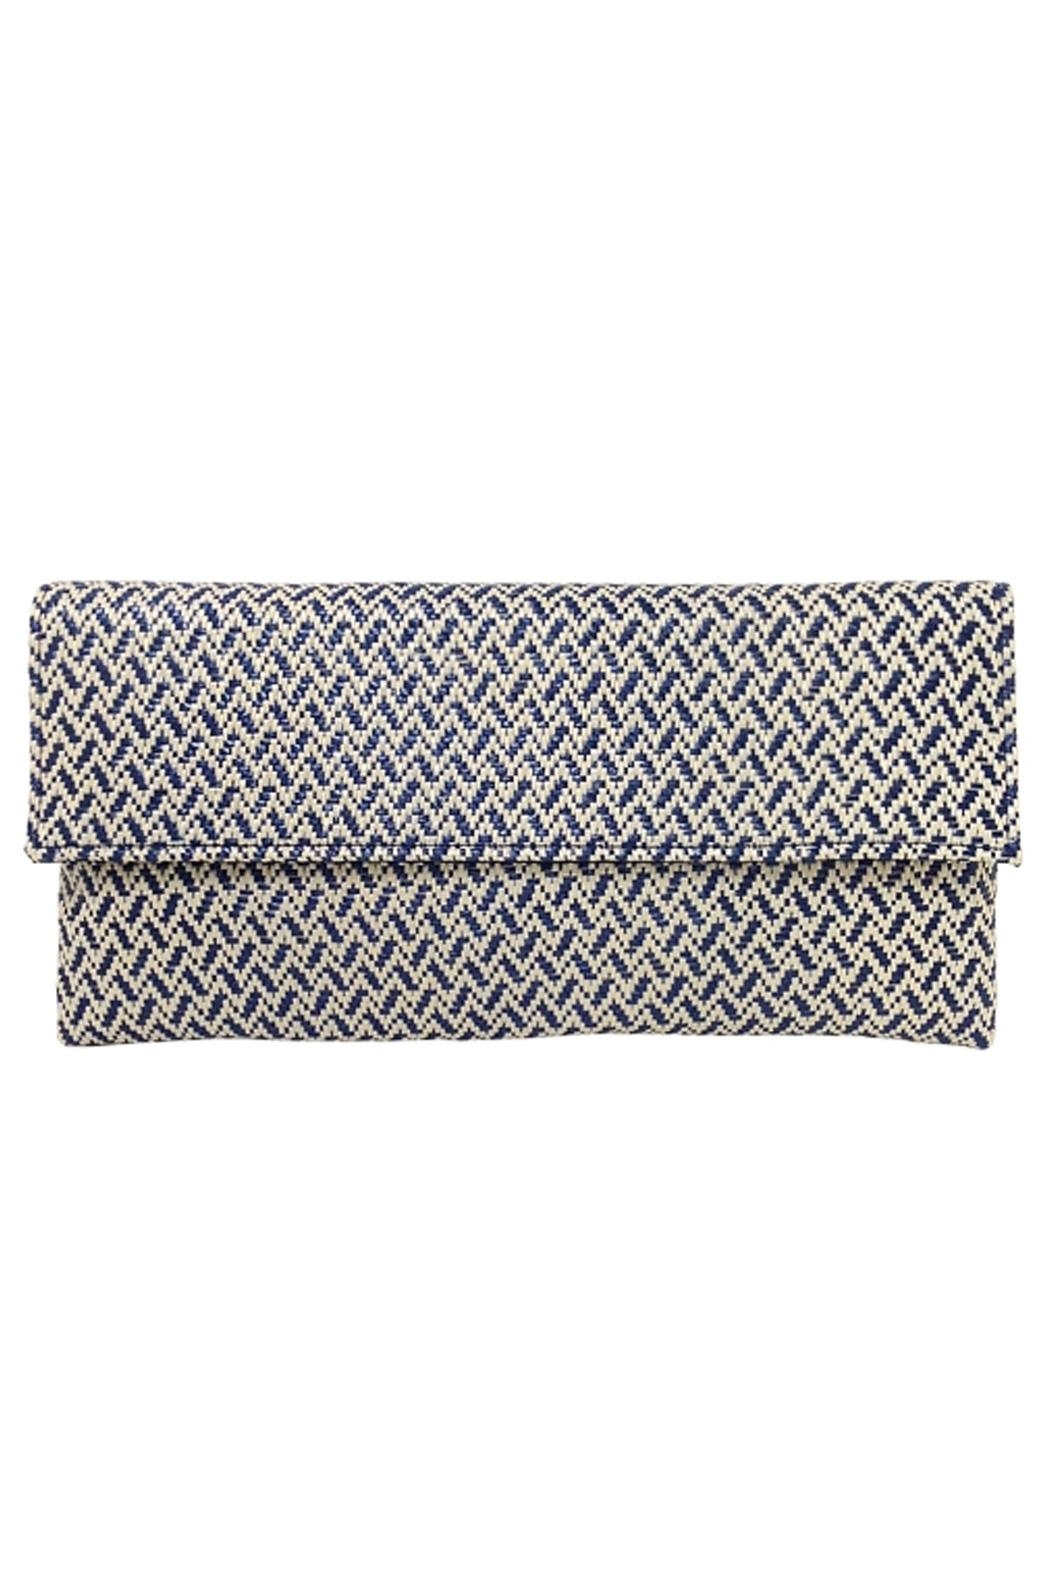 Wild Lilies Jewelry  Navy Chevron Clutch - Main Image